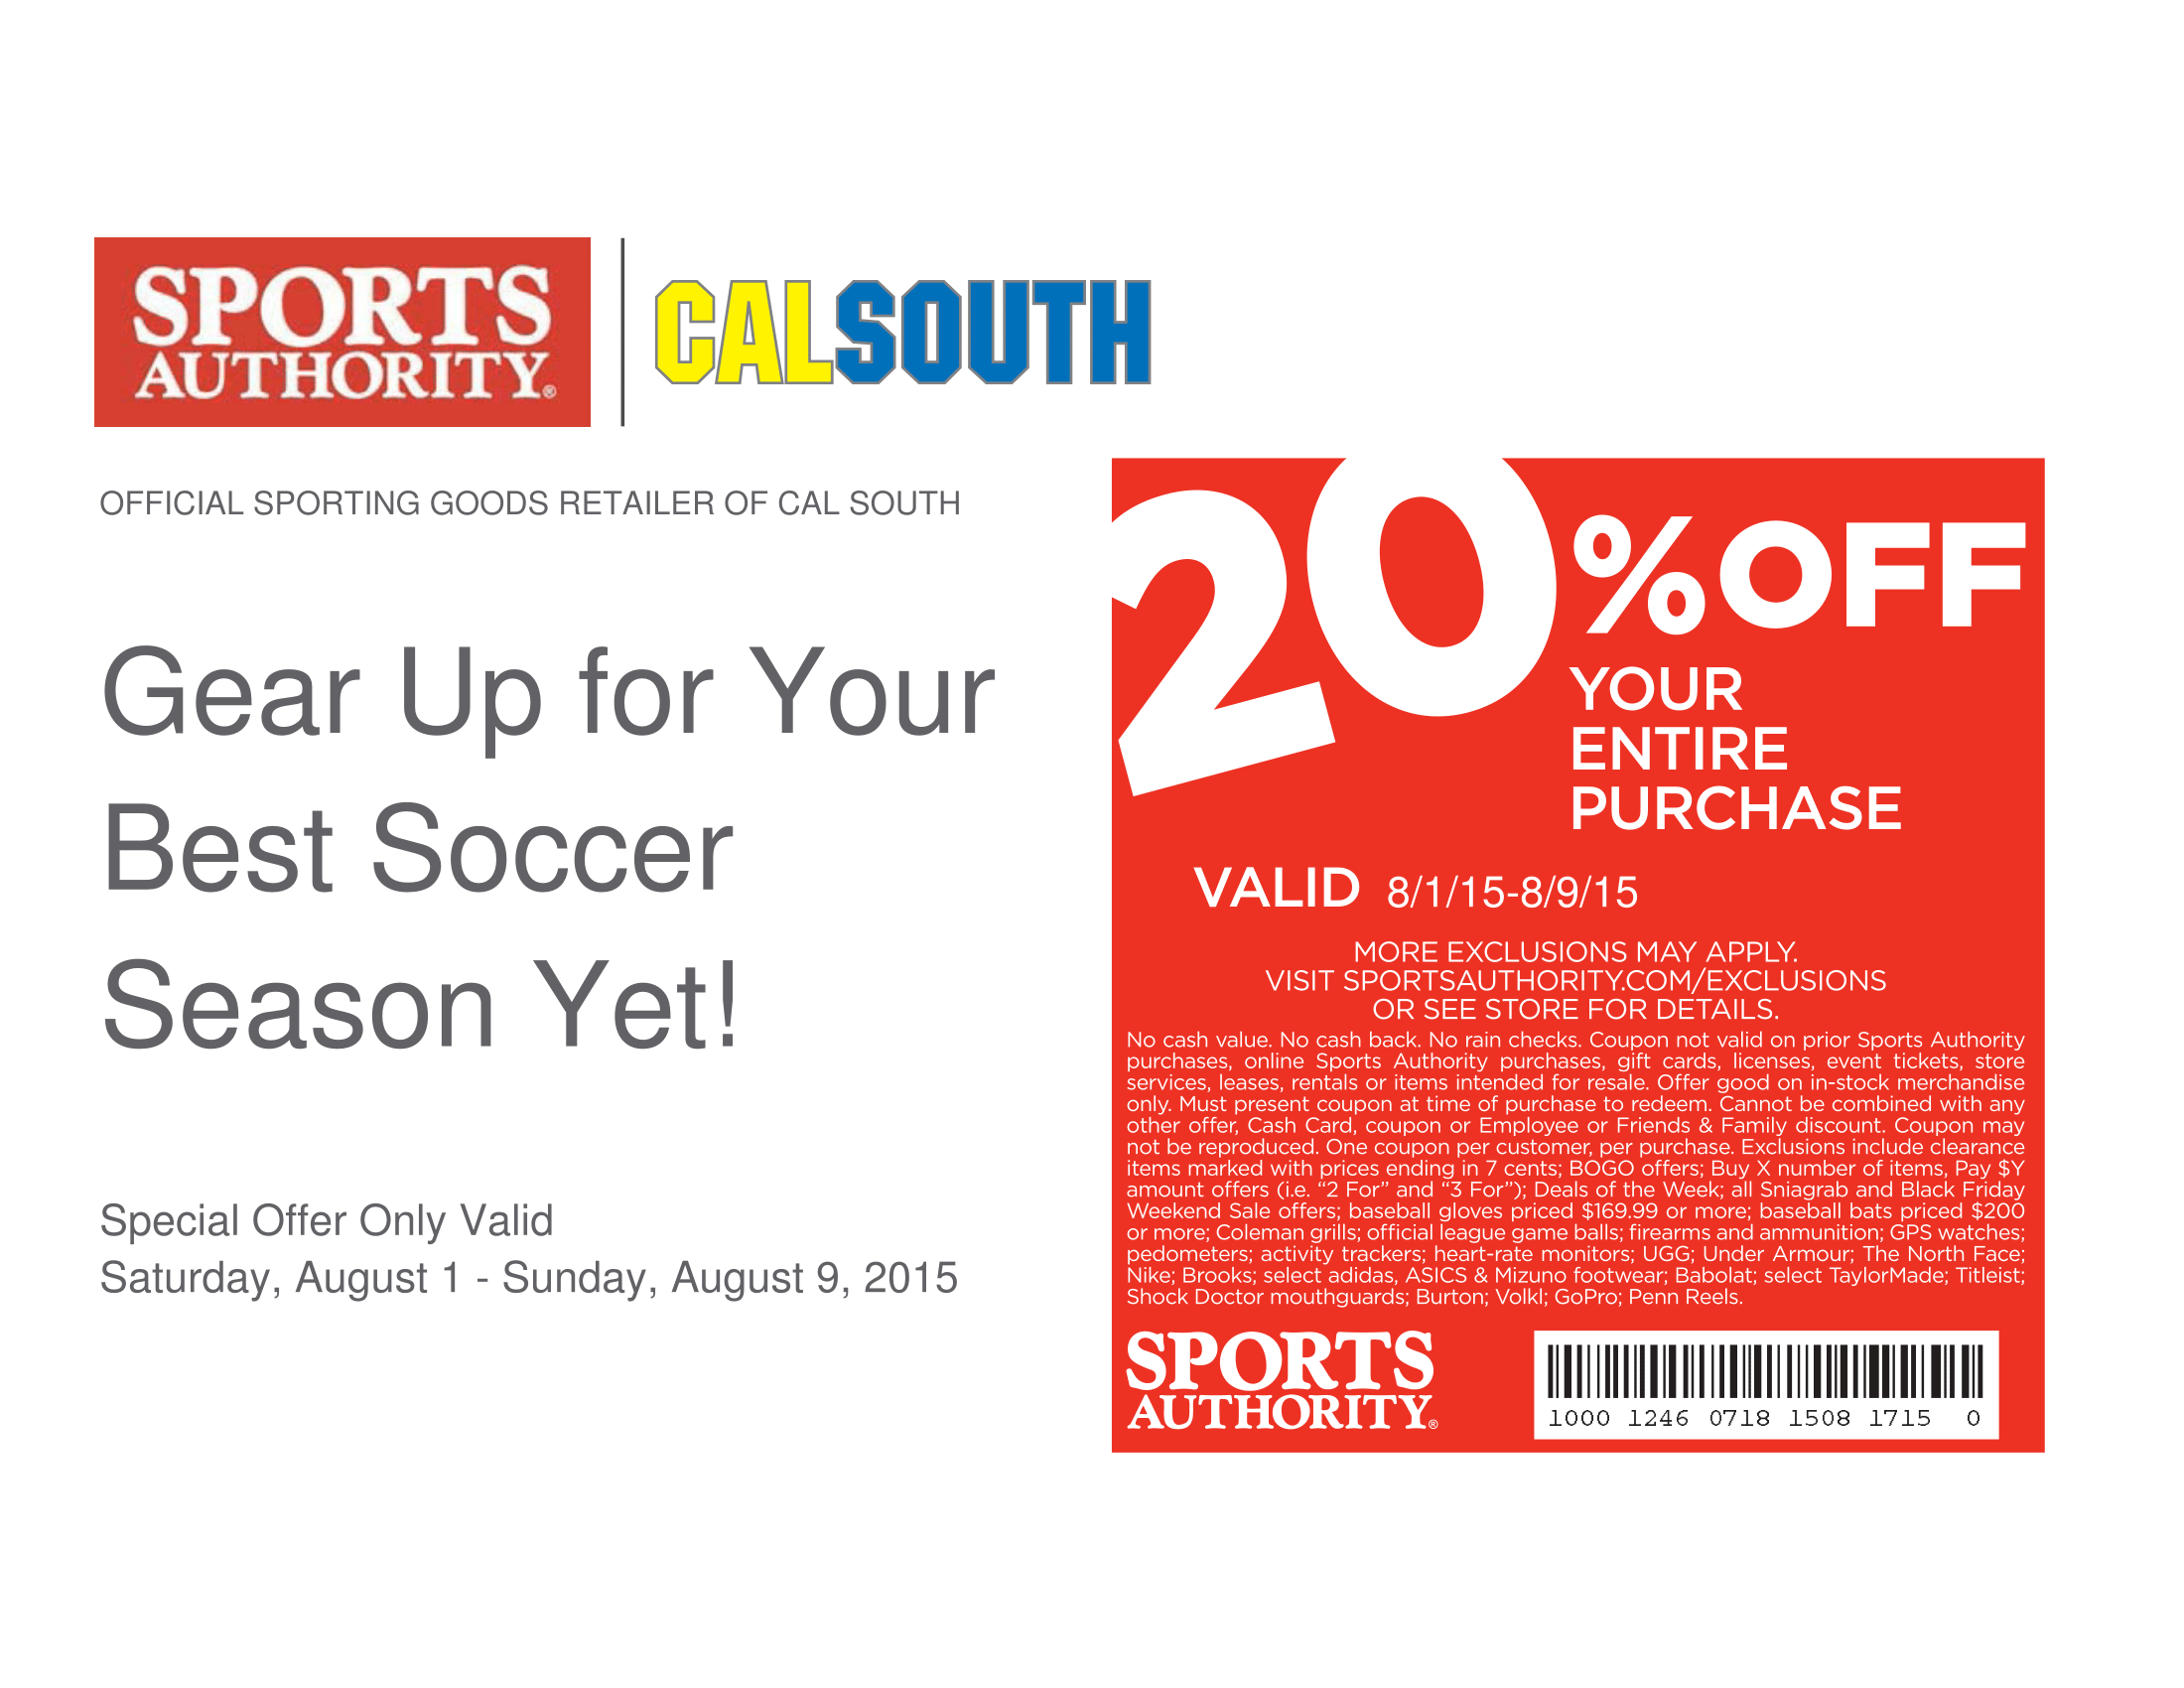 Sports Authority 30% Off Coupon - mjsulapost.tk 30% off 30% off Get Deal Sports Authority 30% Off Coupon - mjsulapost.tk 30% off Get Deal Get Deal 30% off Get Deal Sports Authority Coupon Codes go to mjsulapost.tk Total 20 active mjsulapost.tk Promotion Codes & Deals are listed and the latest one is updated on.